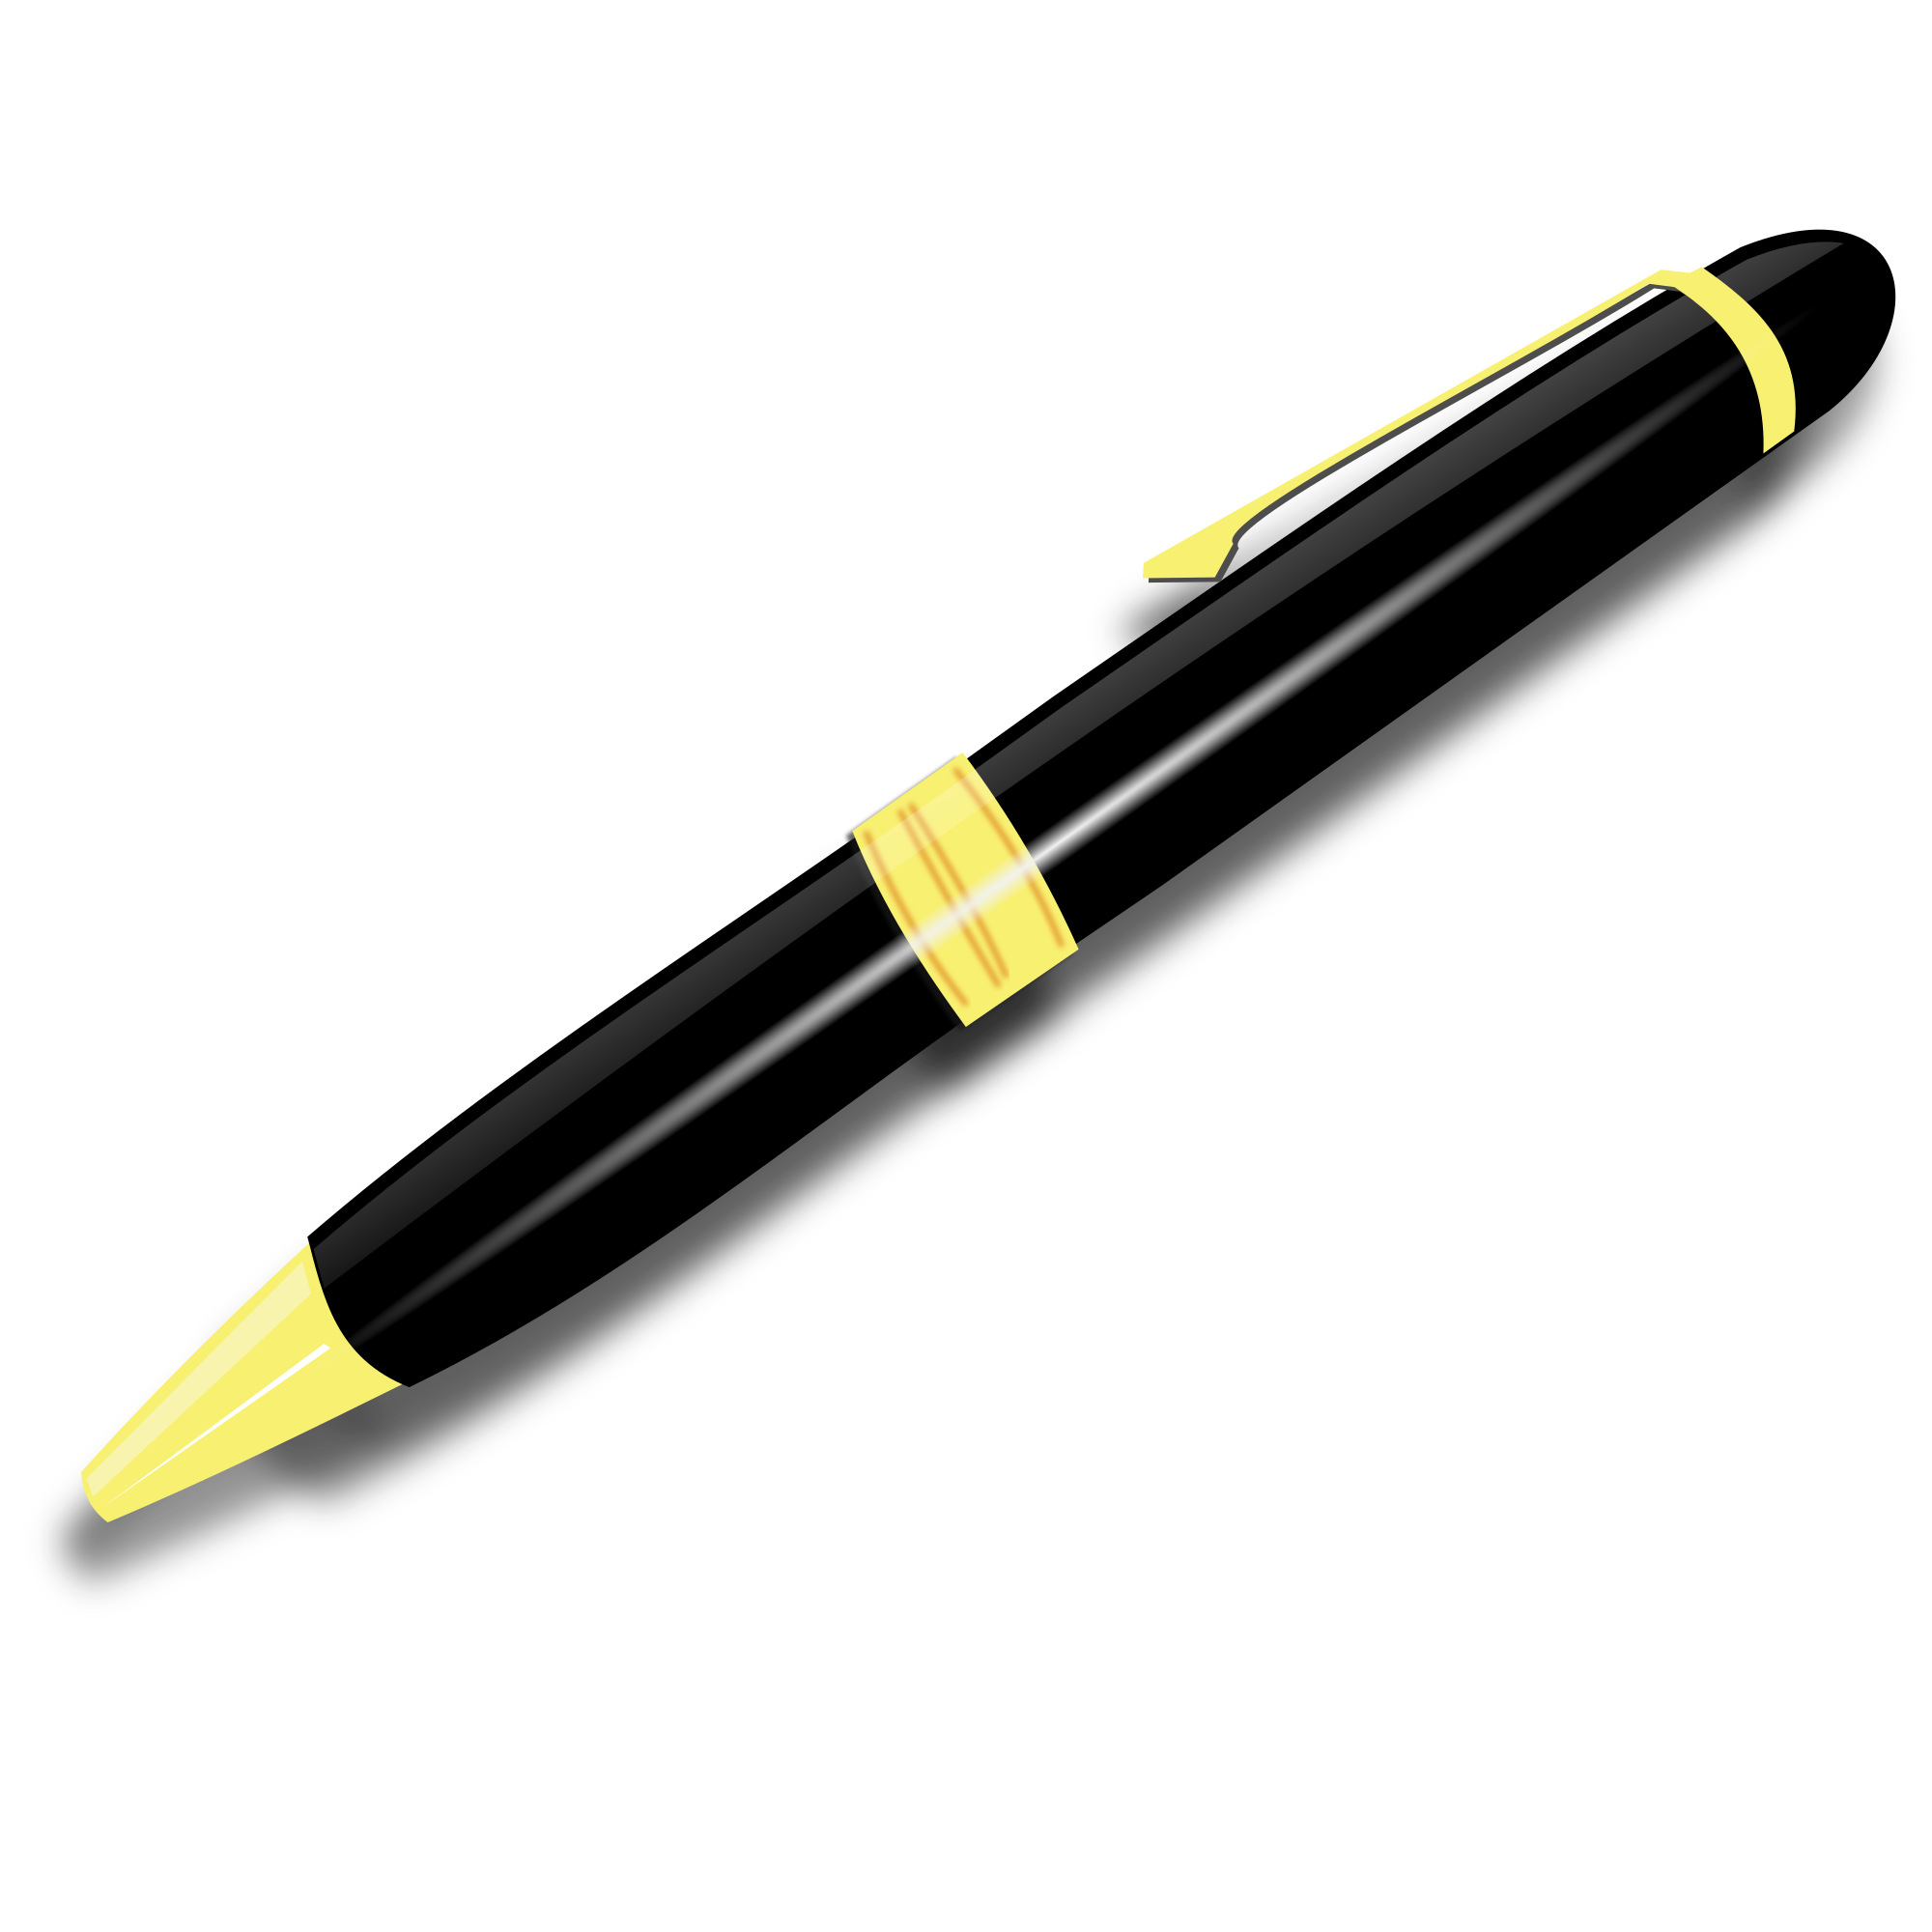 Clipart pen personal statement. File by hatalar svg